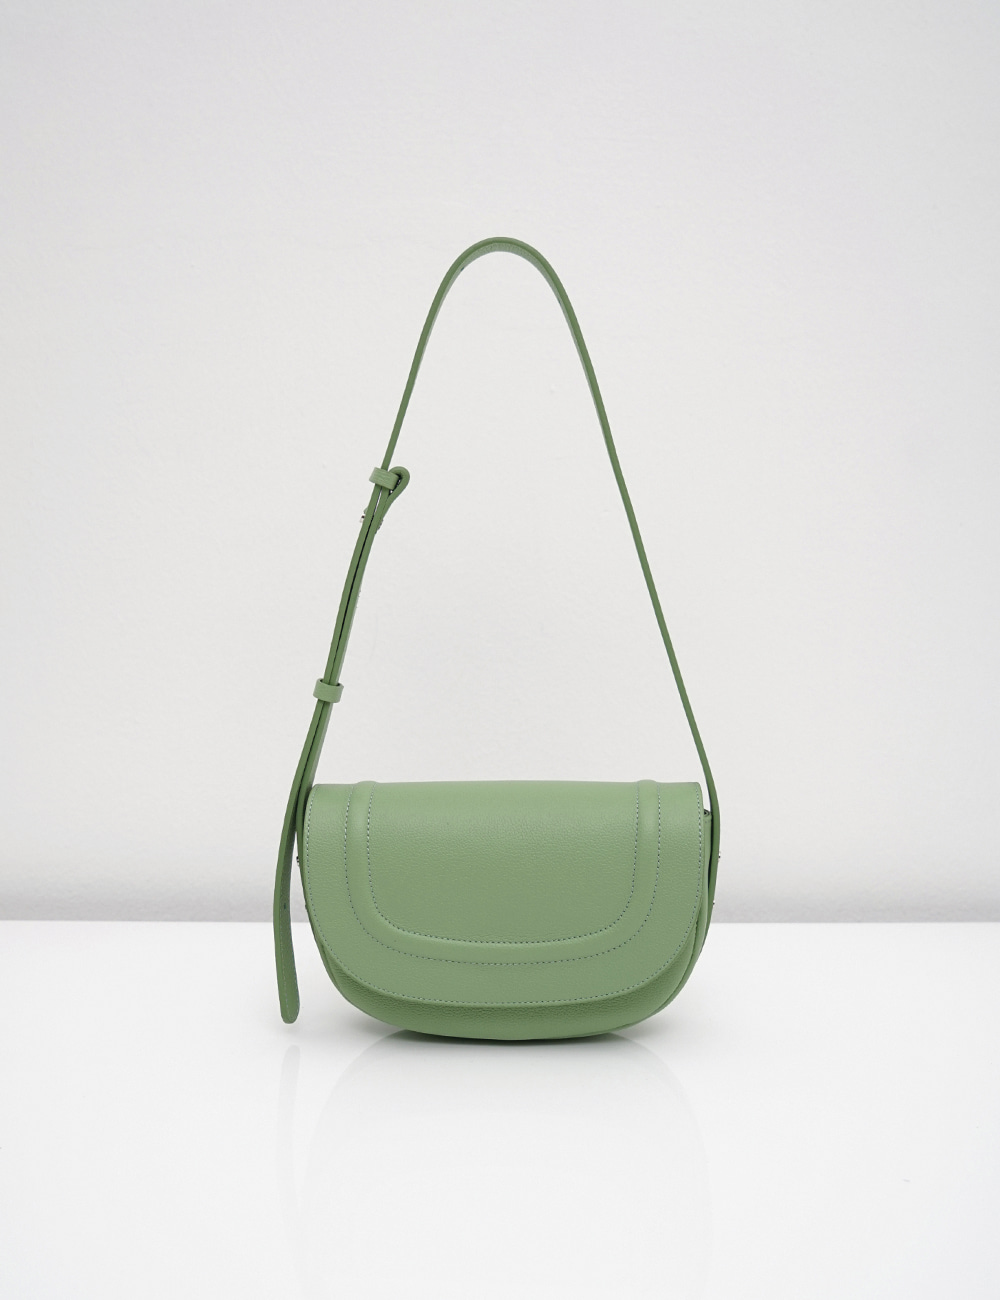 [New Arrivals]Loni small embo / apple green